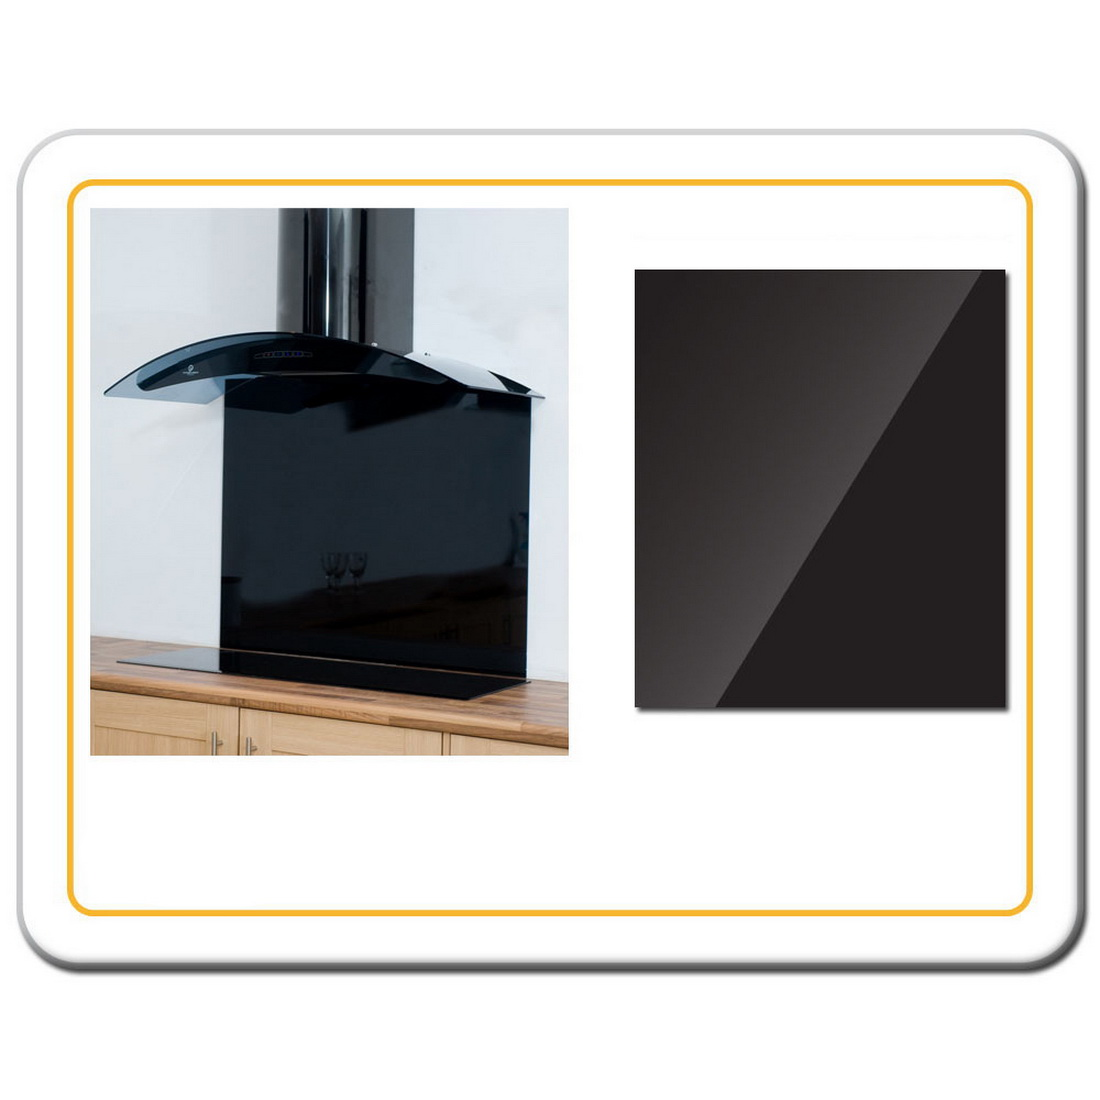 Splashback 900 x 750 x 5 mm Black Toughend Glass 9.5kg 9X75SPLASHBLK